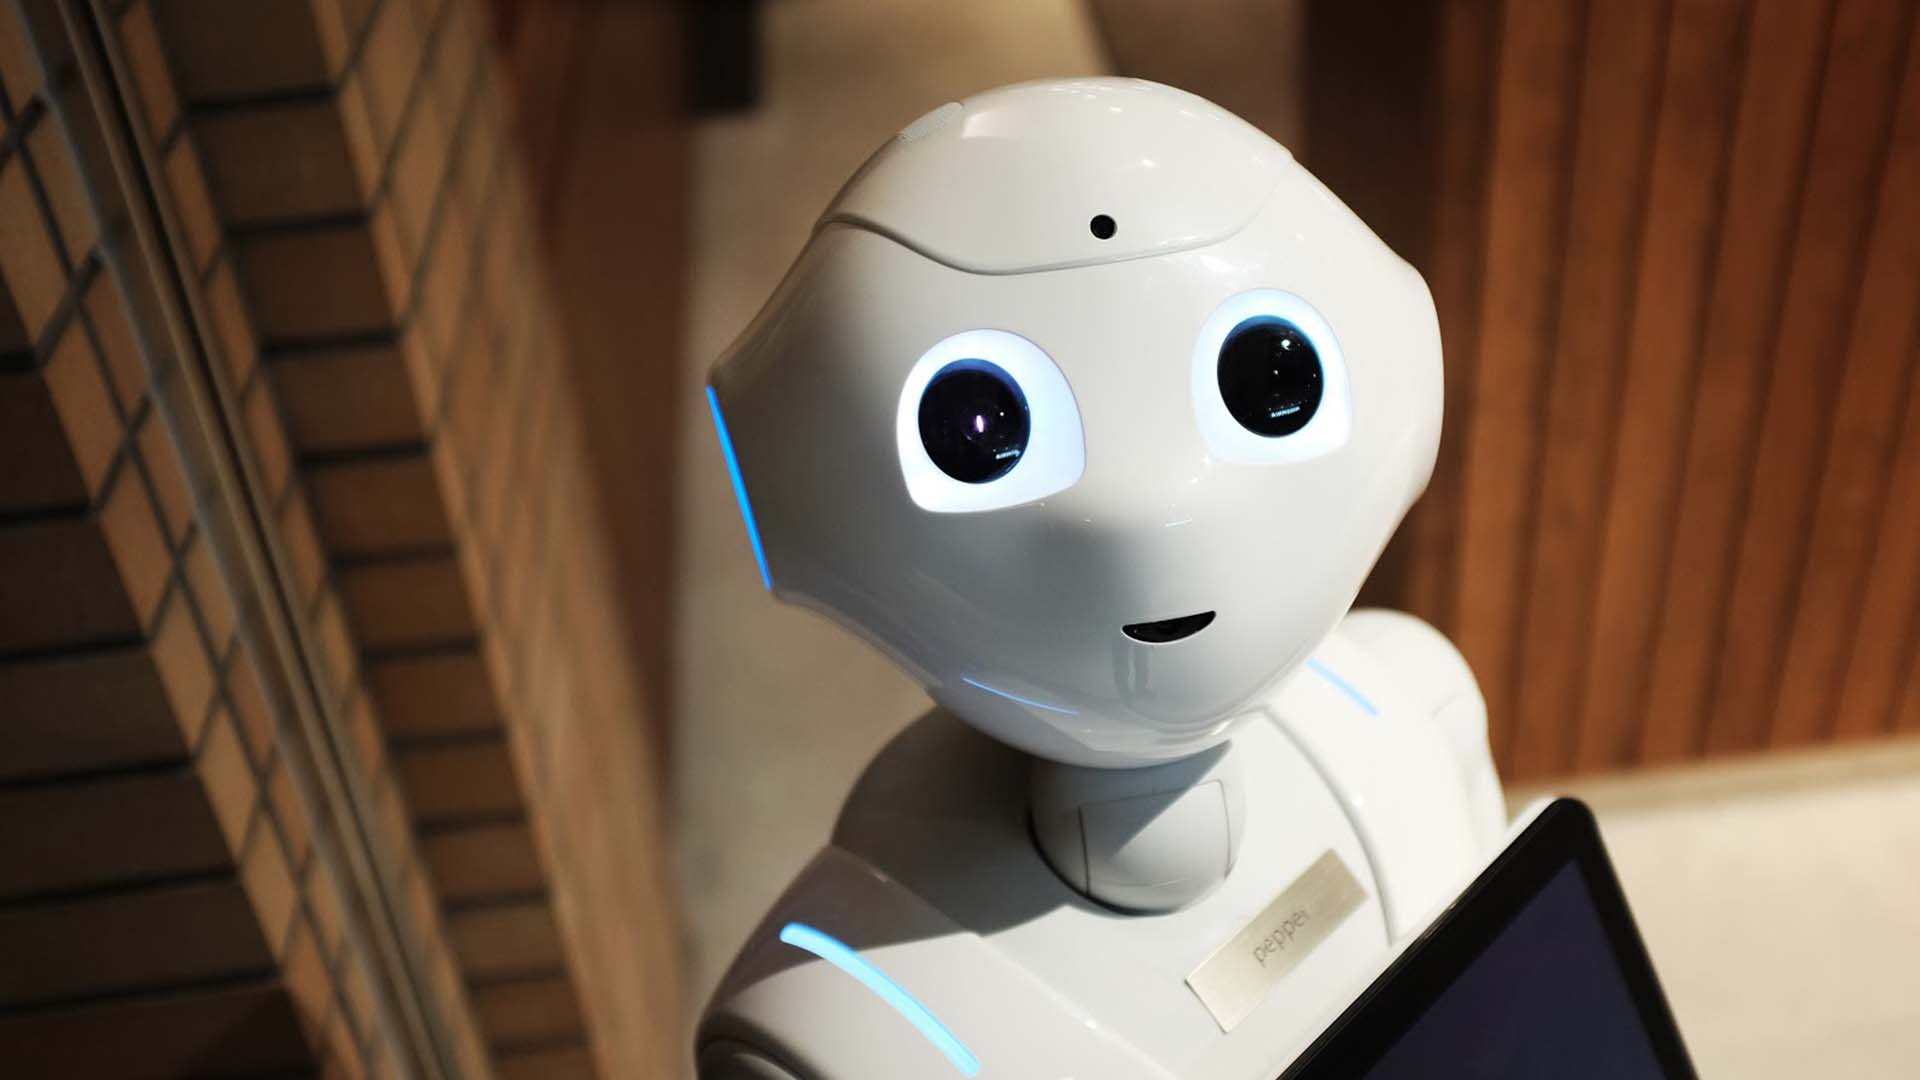 Robot smile syndrome in Japan